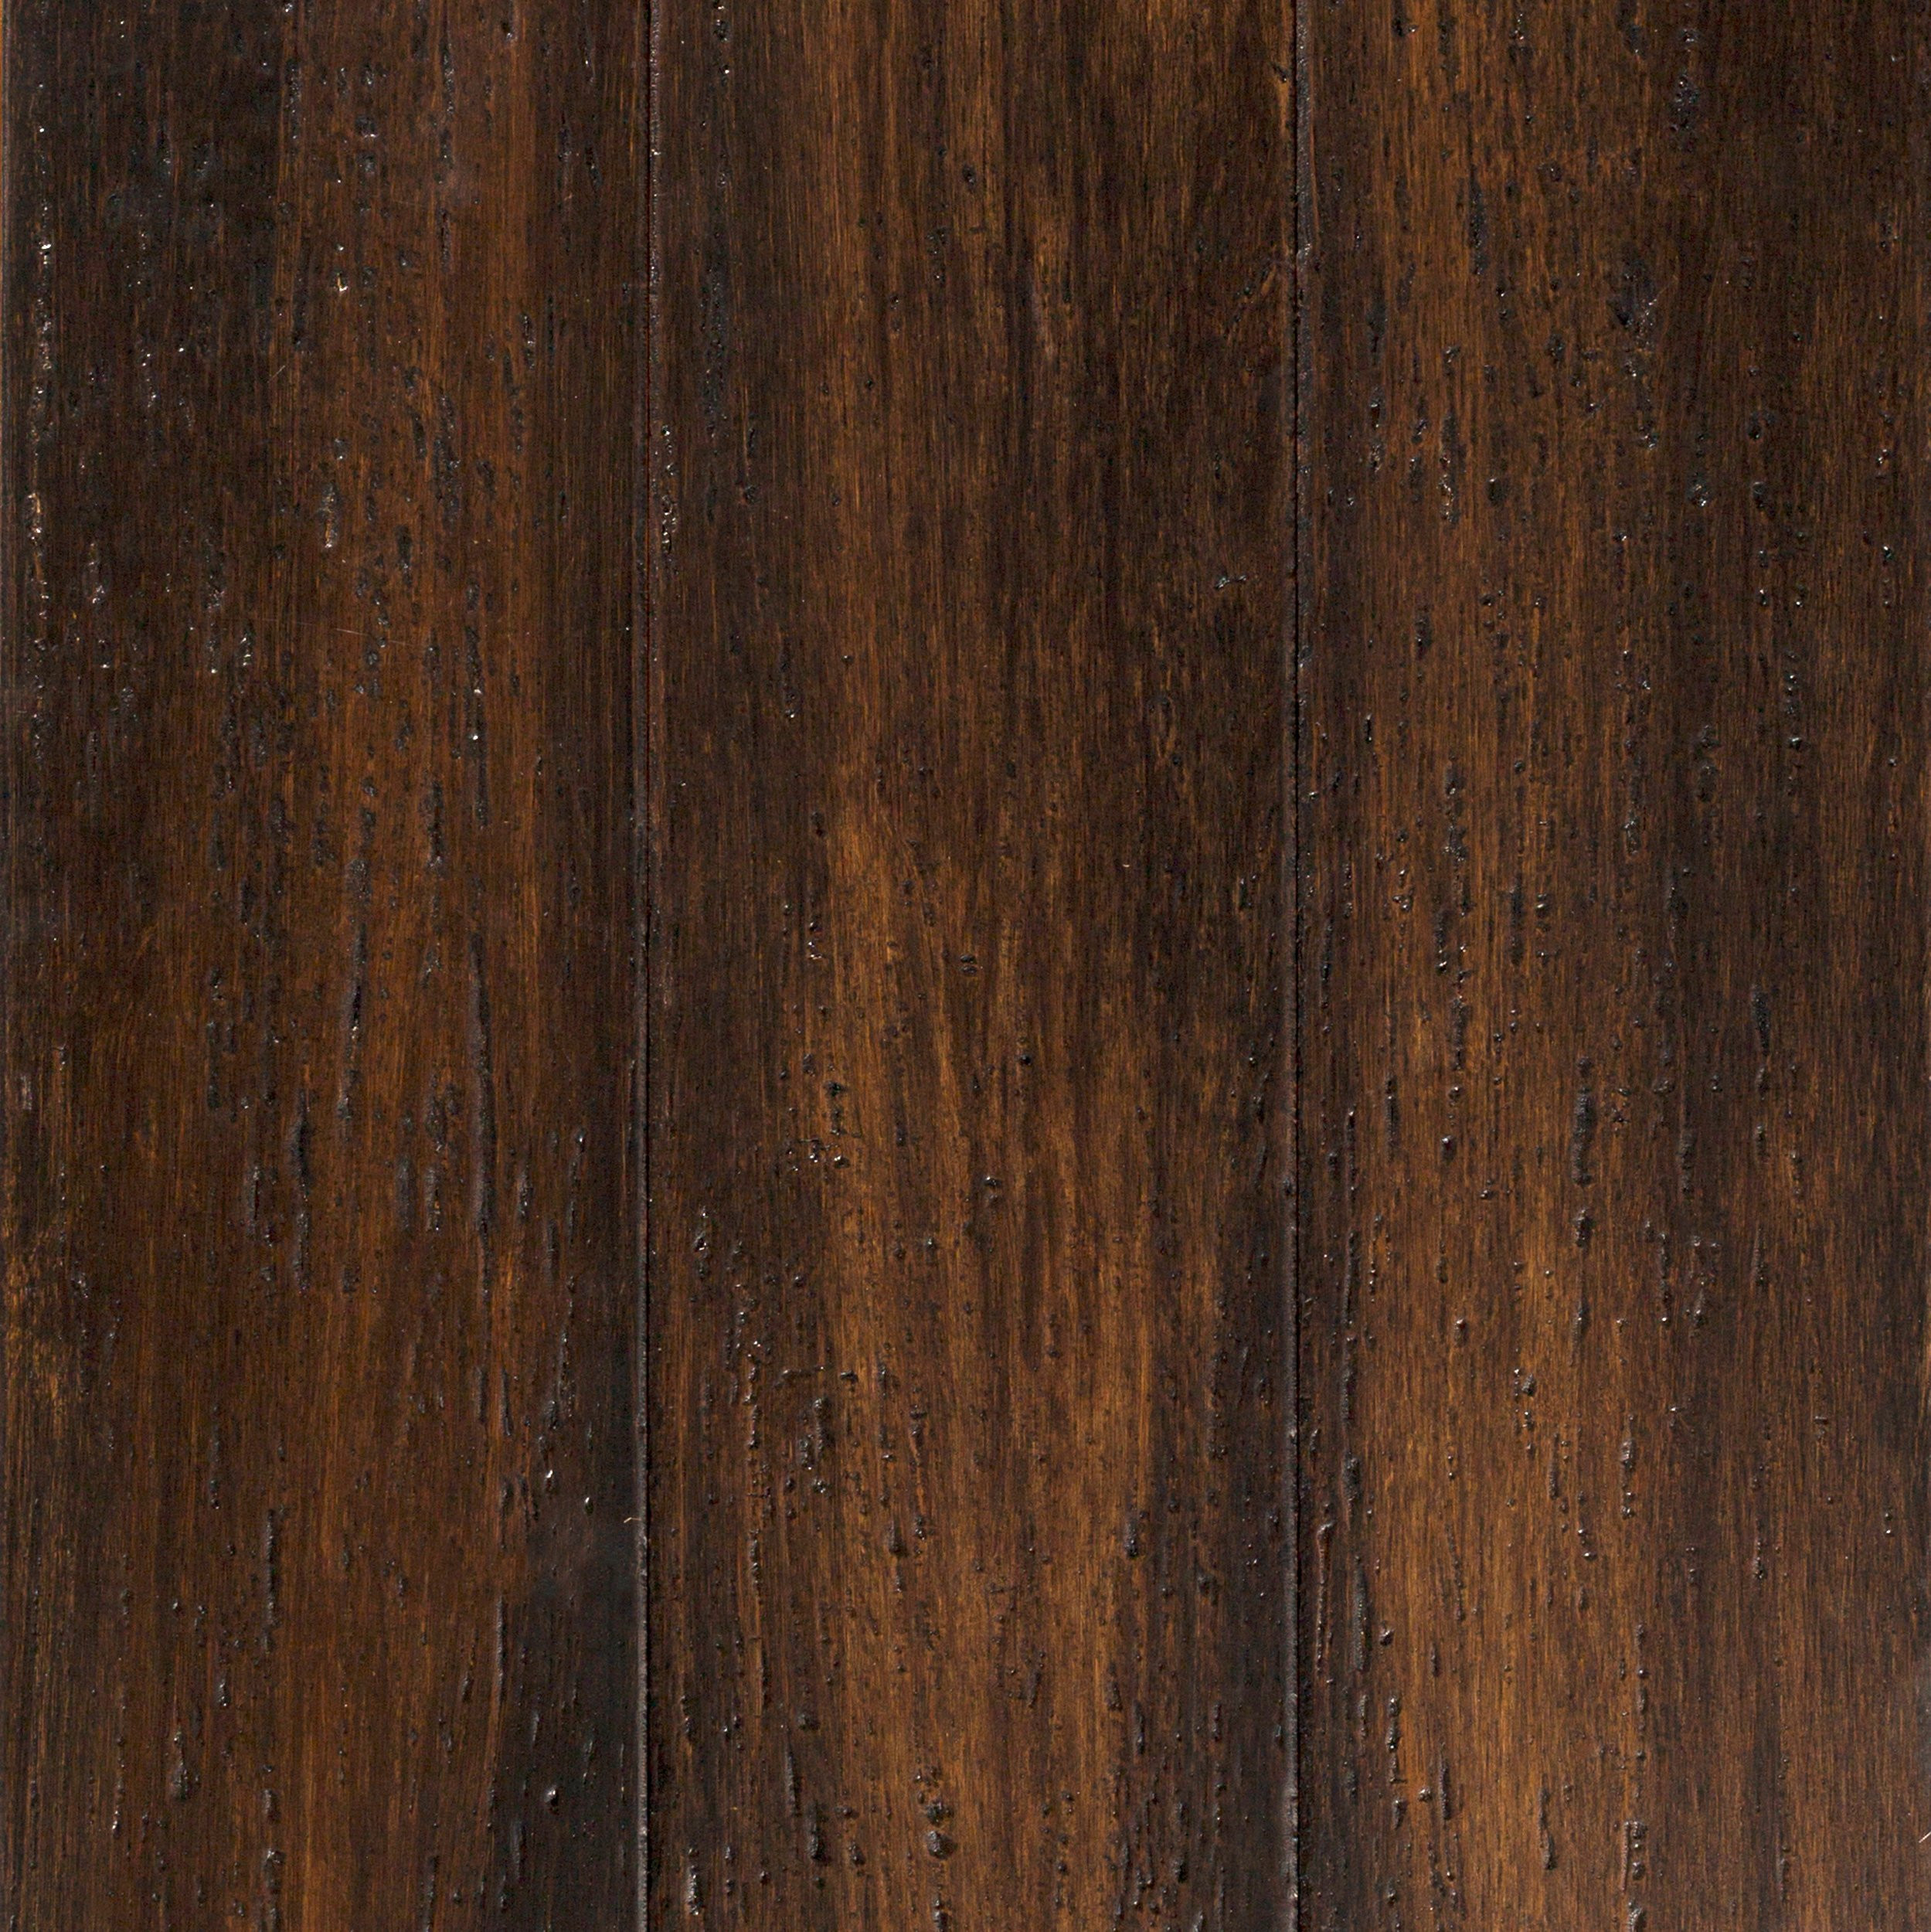 strand bamboo flooring vs hardwood of java tiger locking solid stranded bamboo 1 2in x 5in 100095603 with barcelona wire brushed solid stranded bamboo